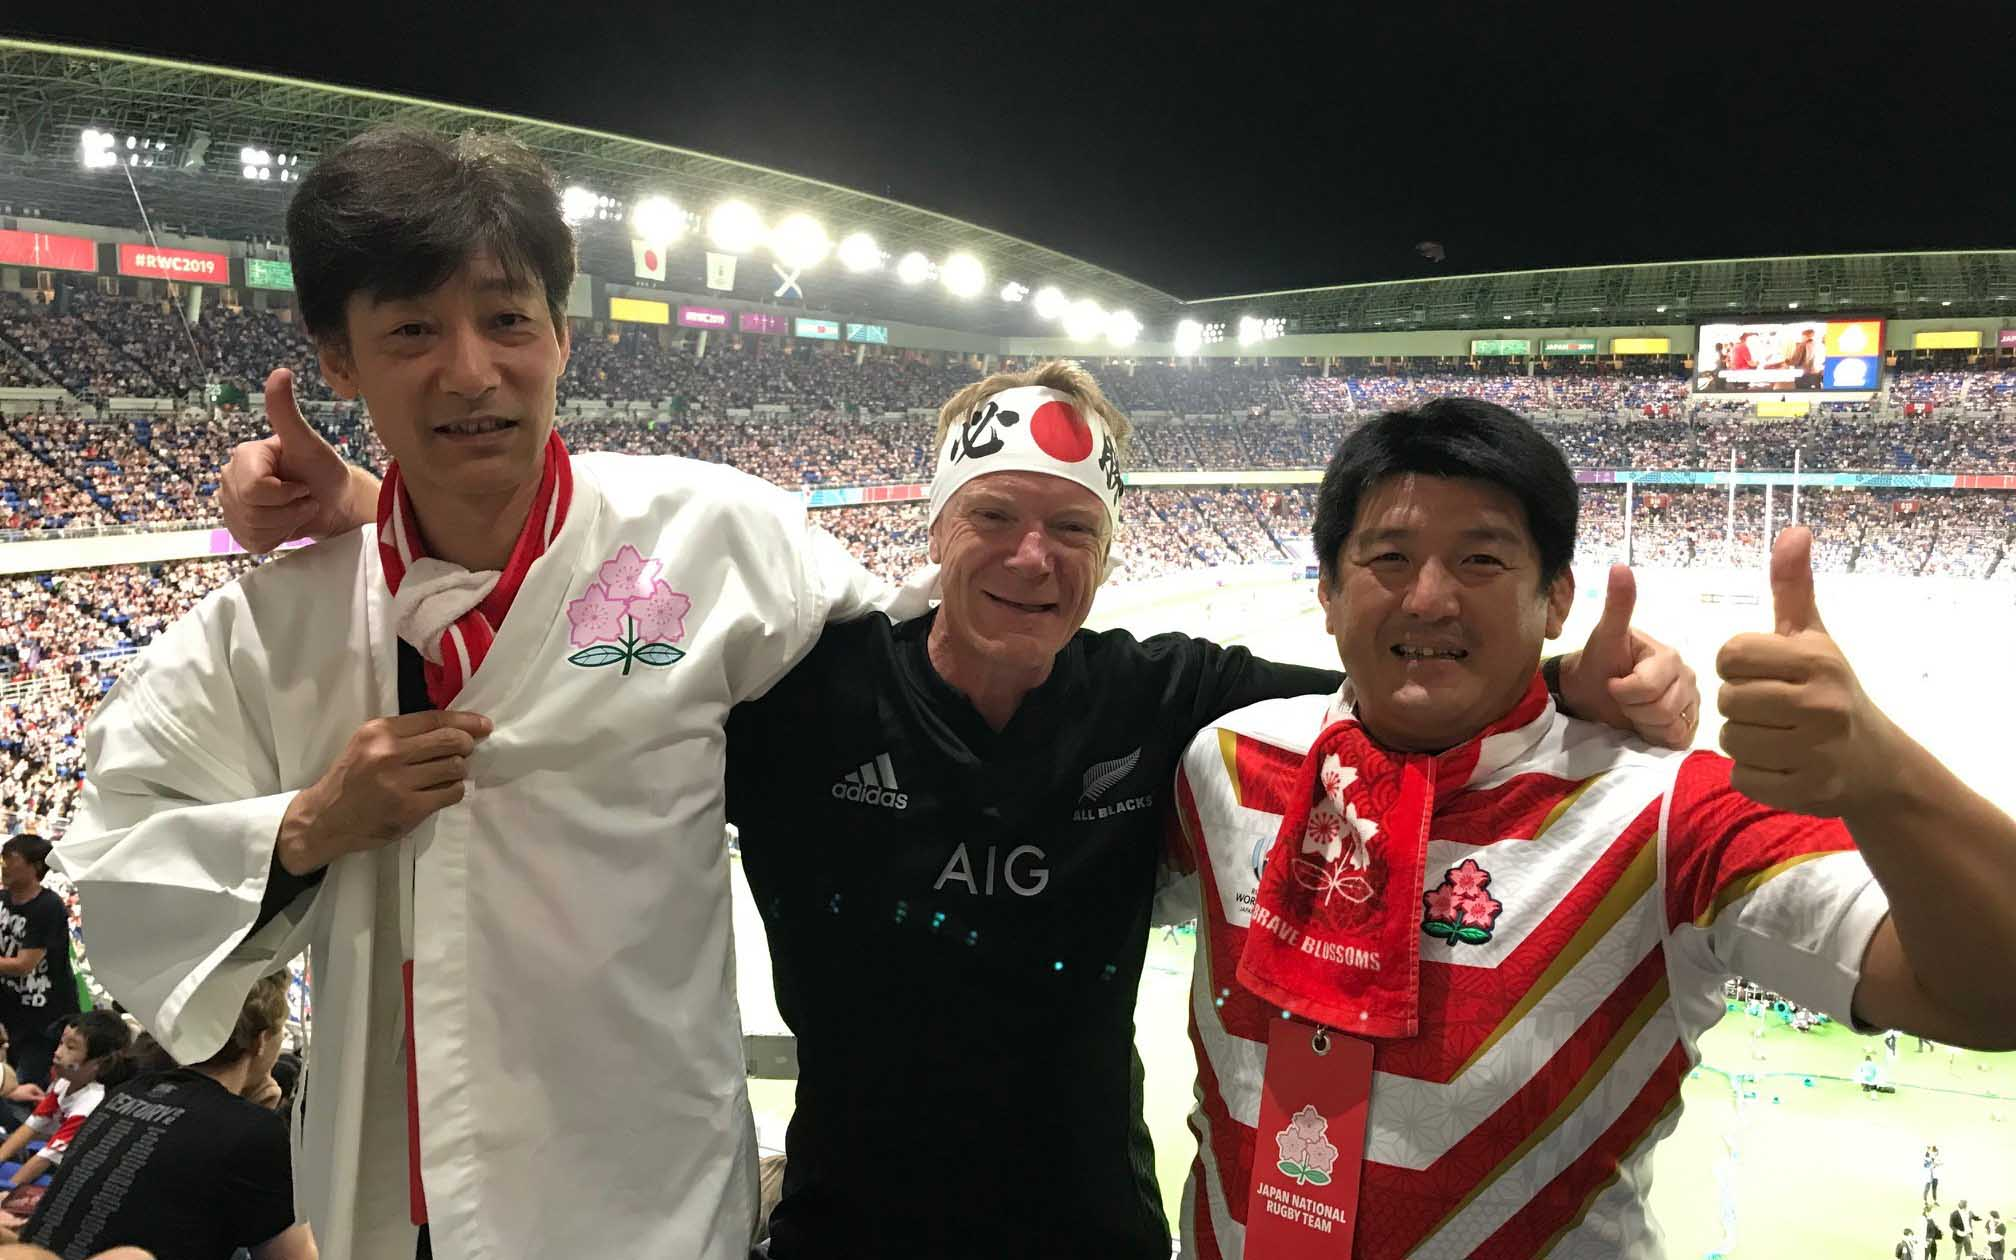 Steve Caunce - Rugby World Cup in Japan